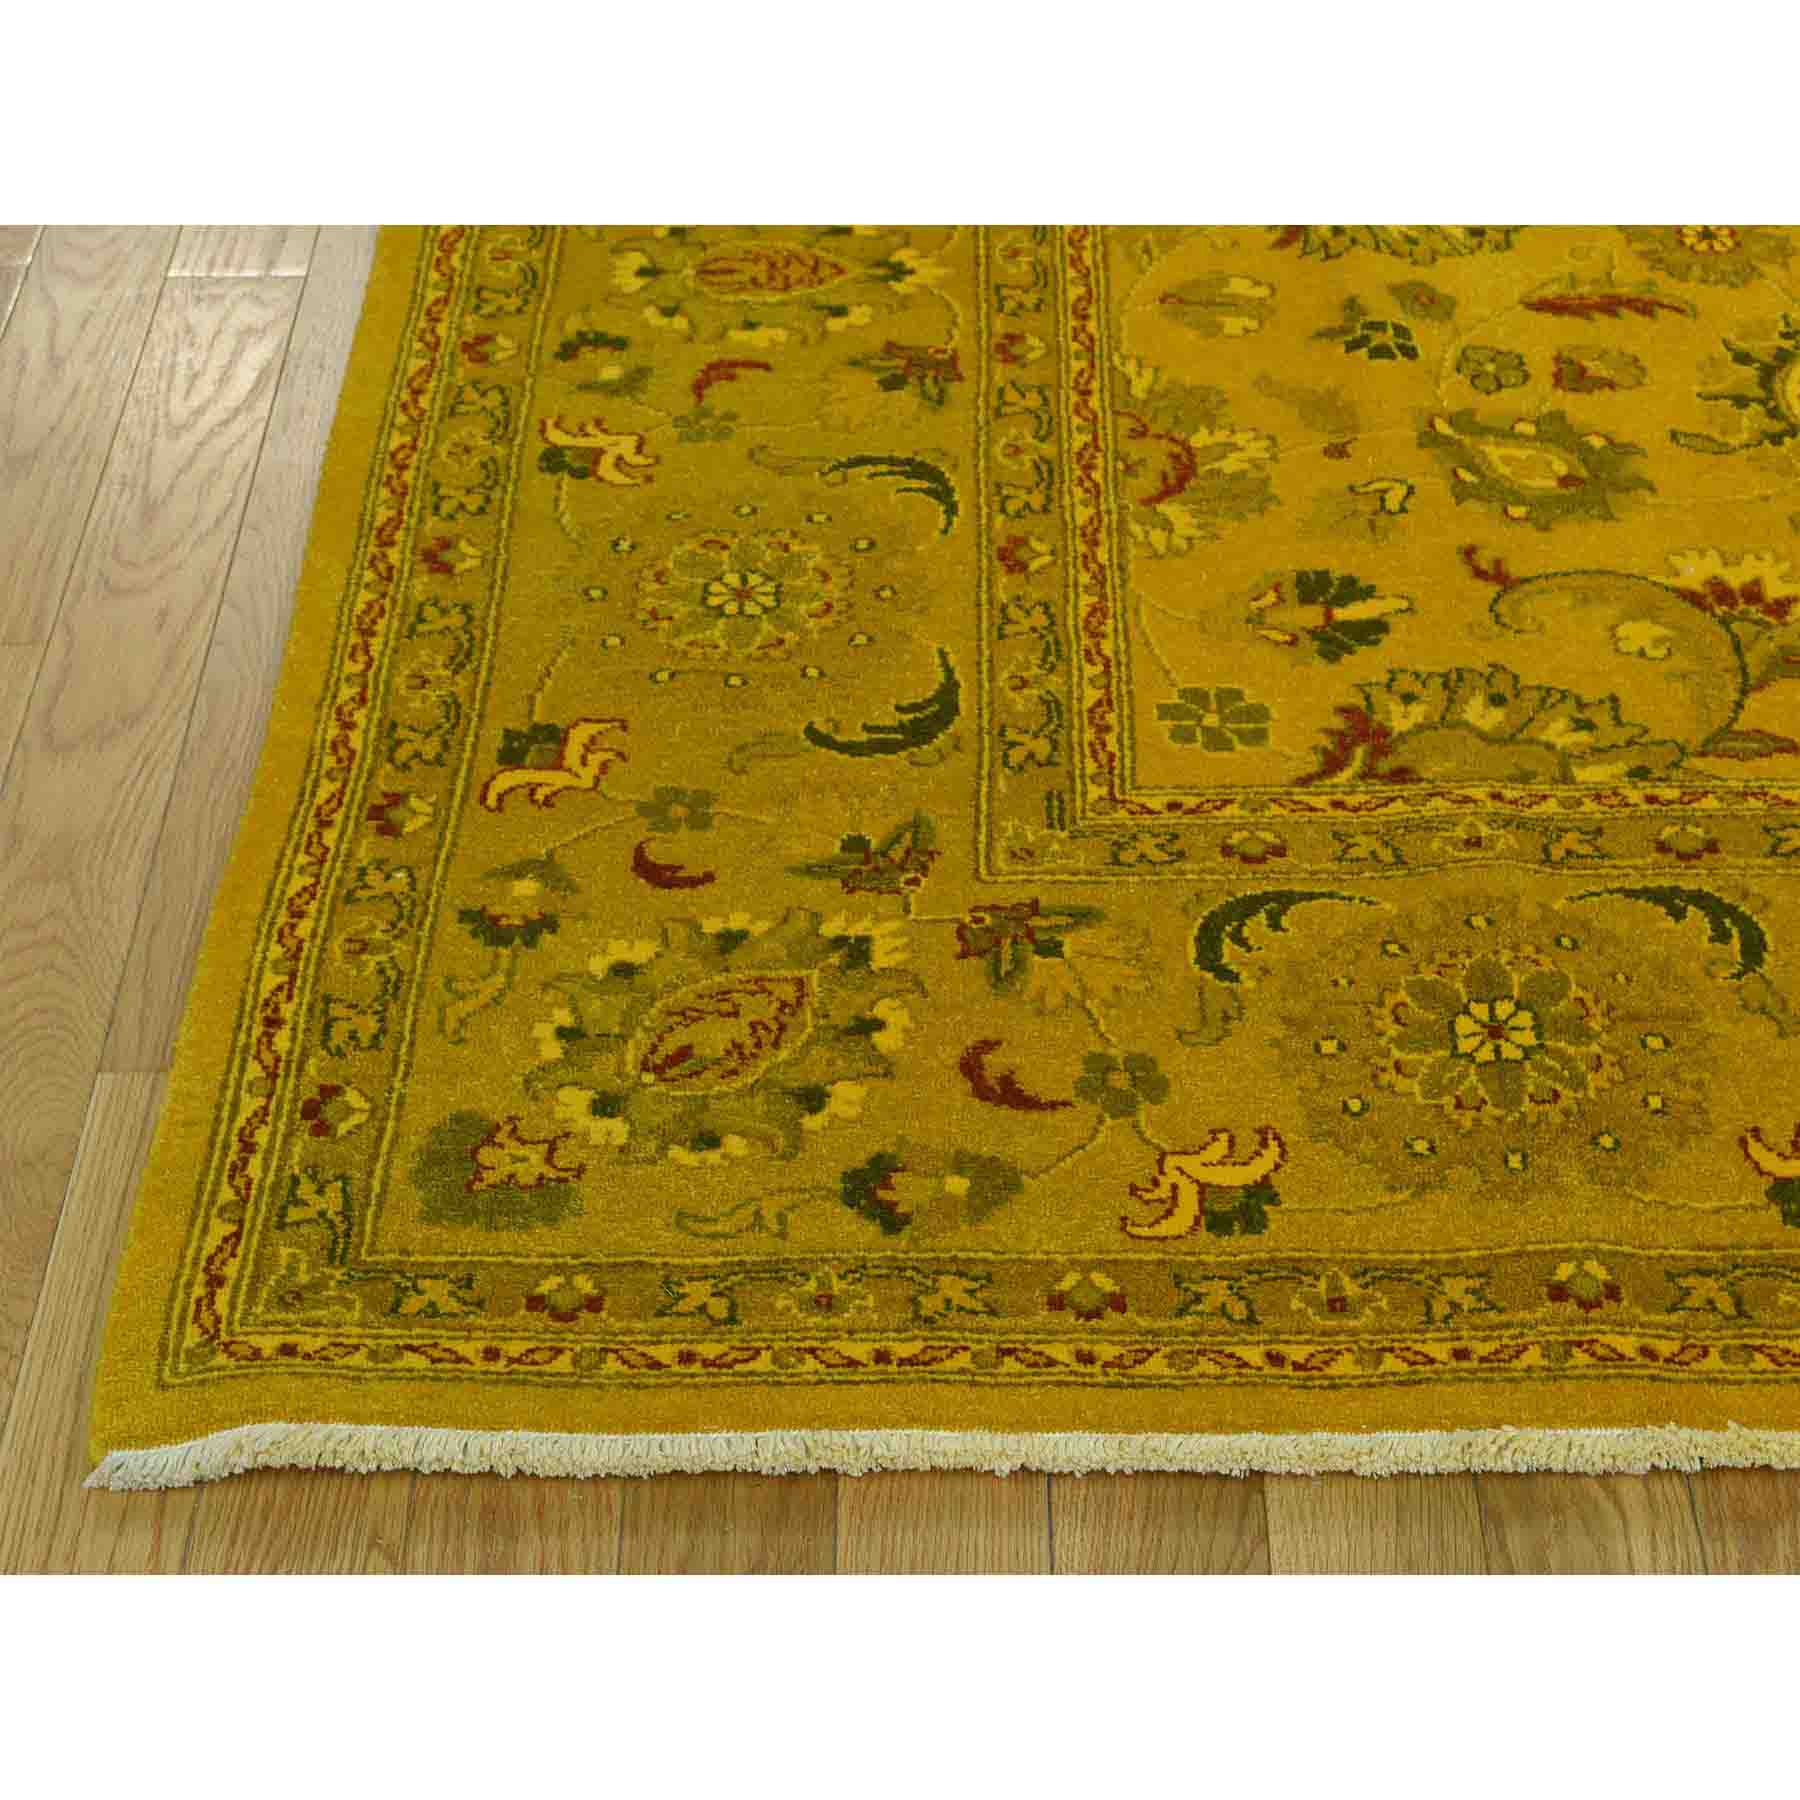 Overdyed-Vintage-Hand-Knotted-Rug-180425